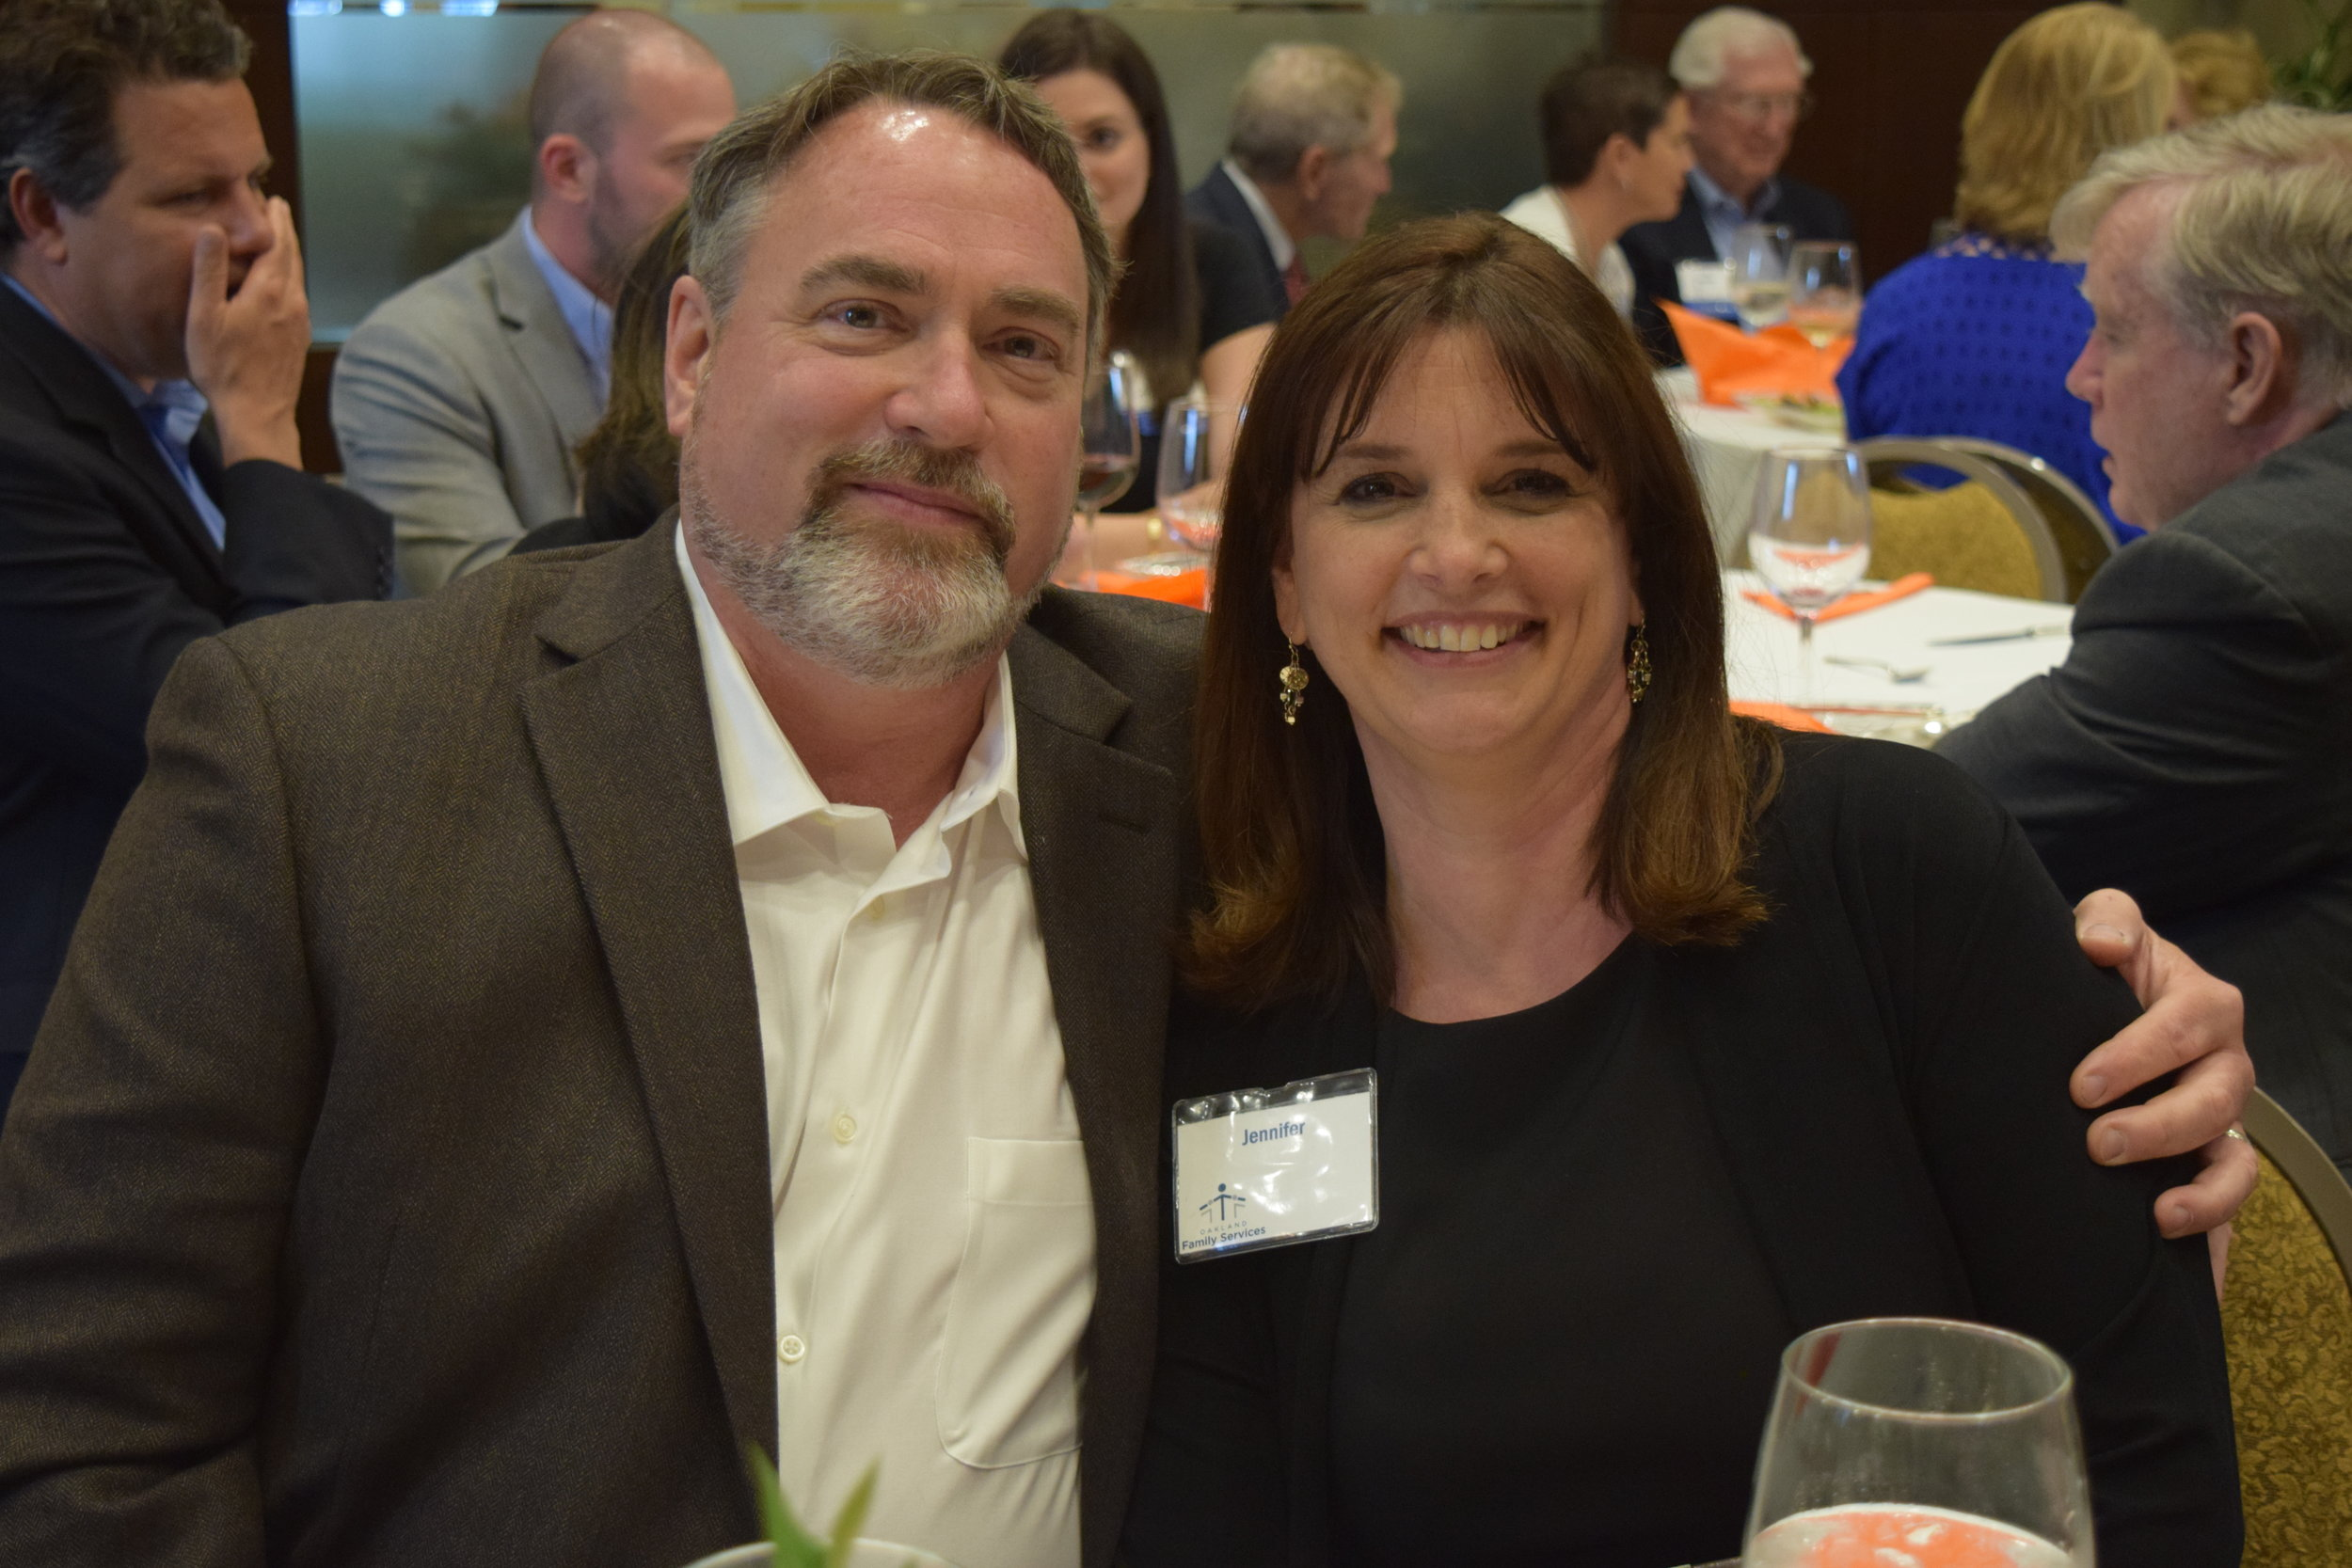 Jennifer with her husband, Mark, at Oakland Family Services' Celebration Event in June.